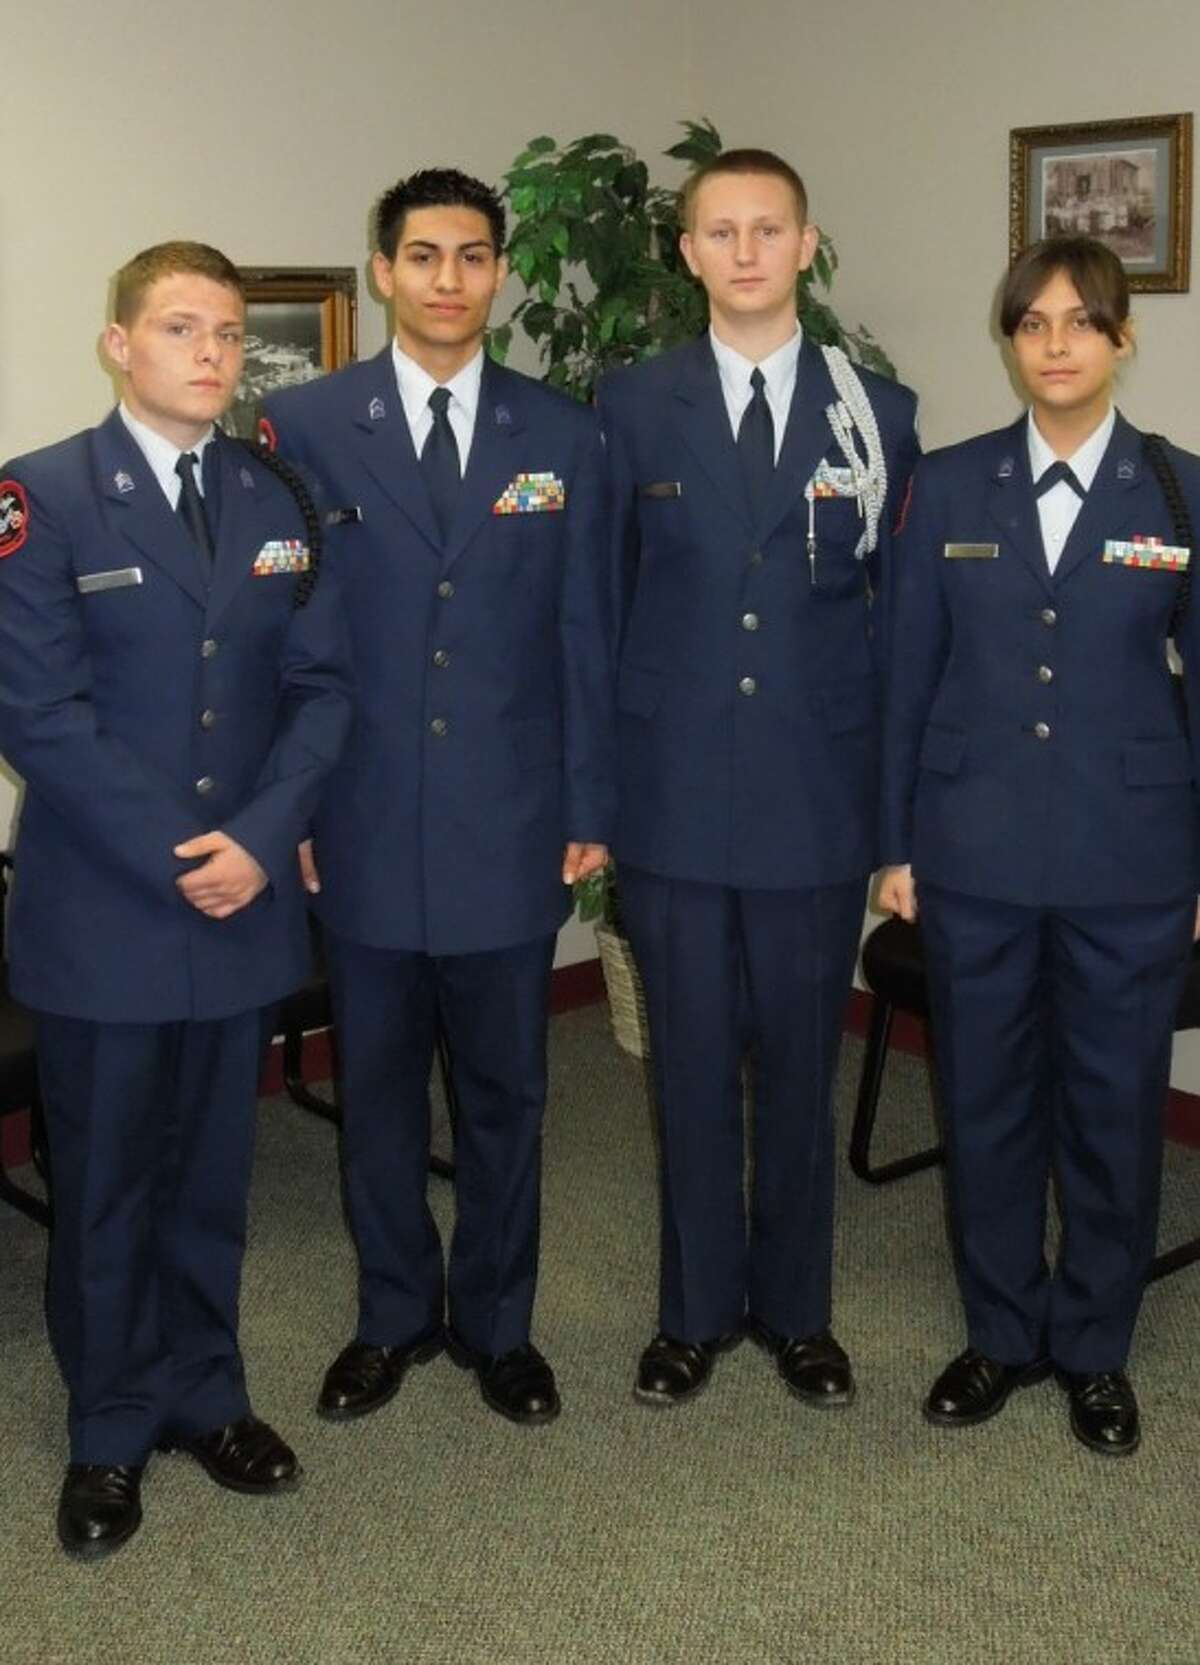 The new AFJROTC officers are, from left, Mark Morgan, Adam Moreno, Joshua Baxley and Darla Young.